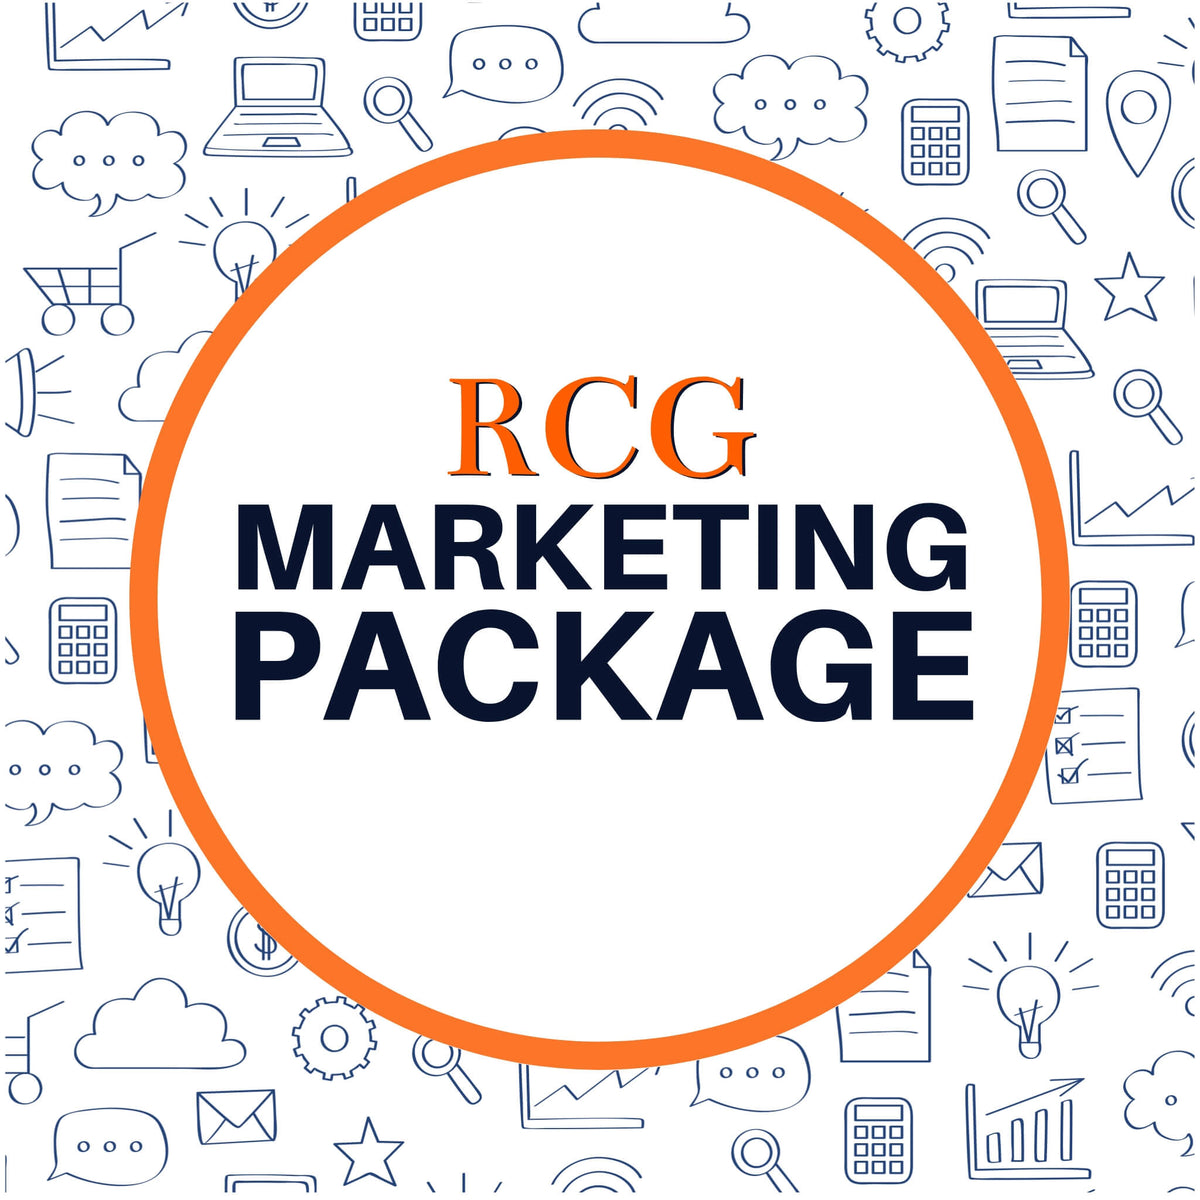 RCG Marketing Package: Request A Quote